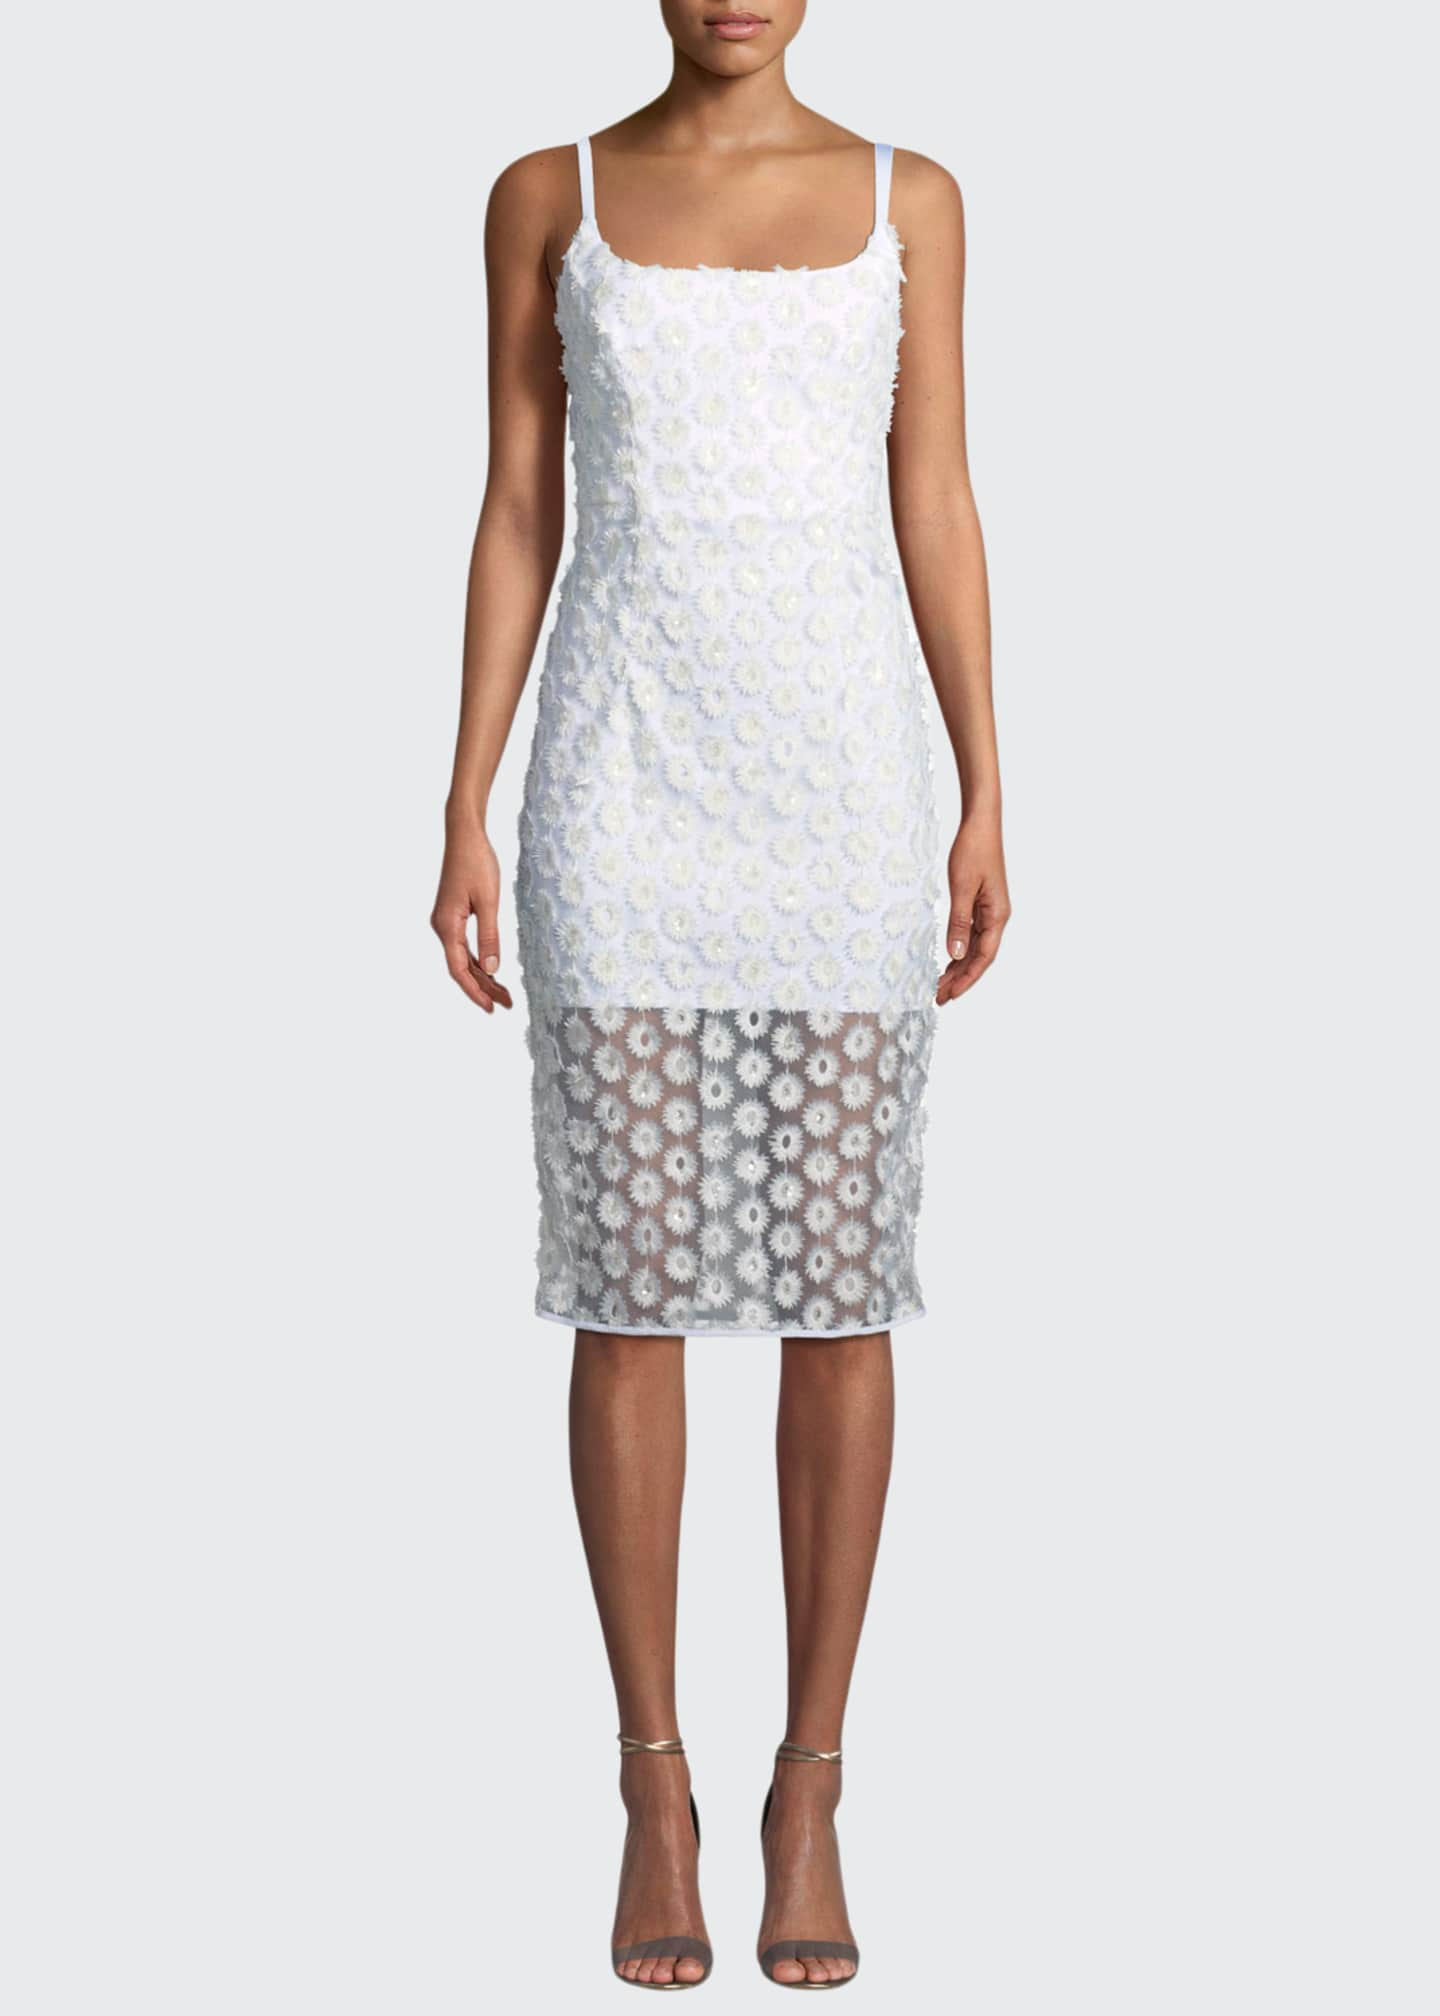 Milly Jessie Stretch Daisy Lace Sleeveless Cocktail Dress